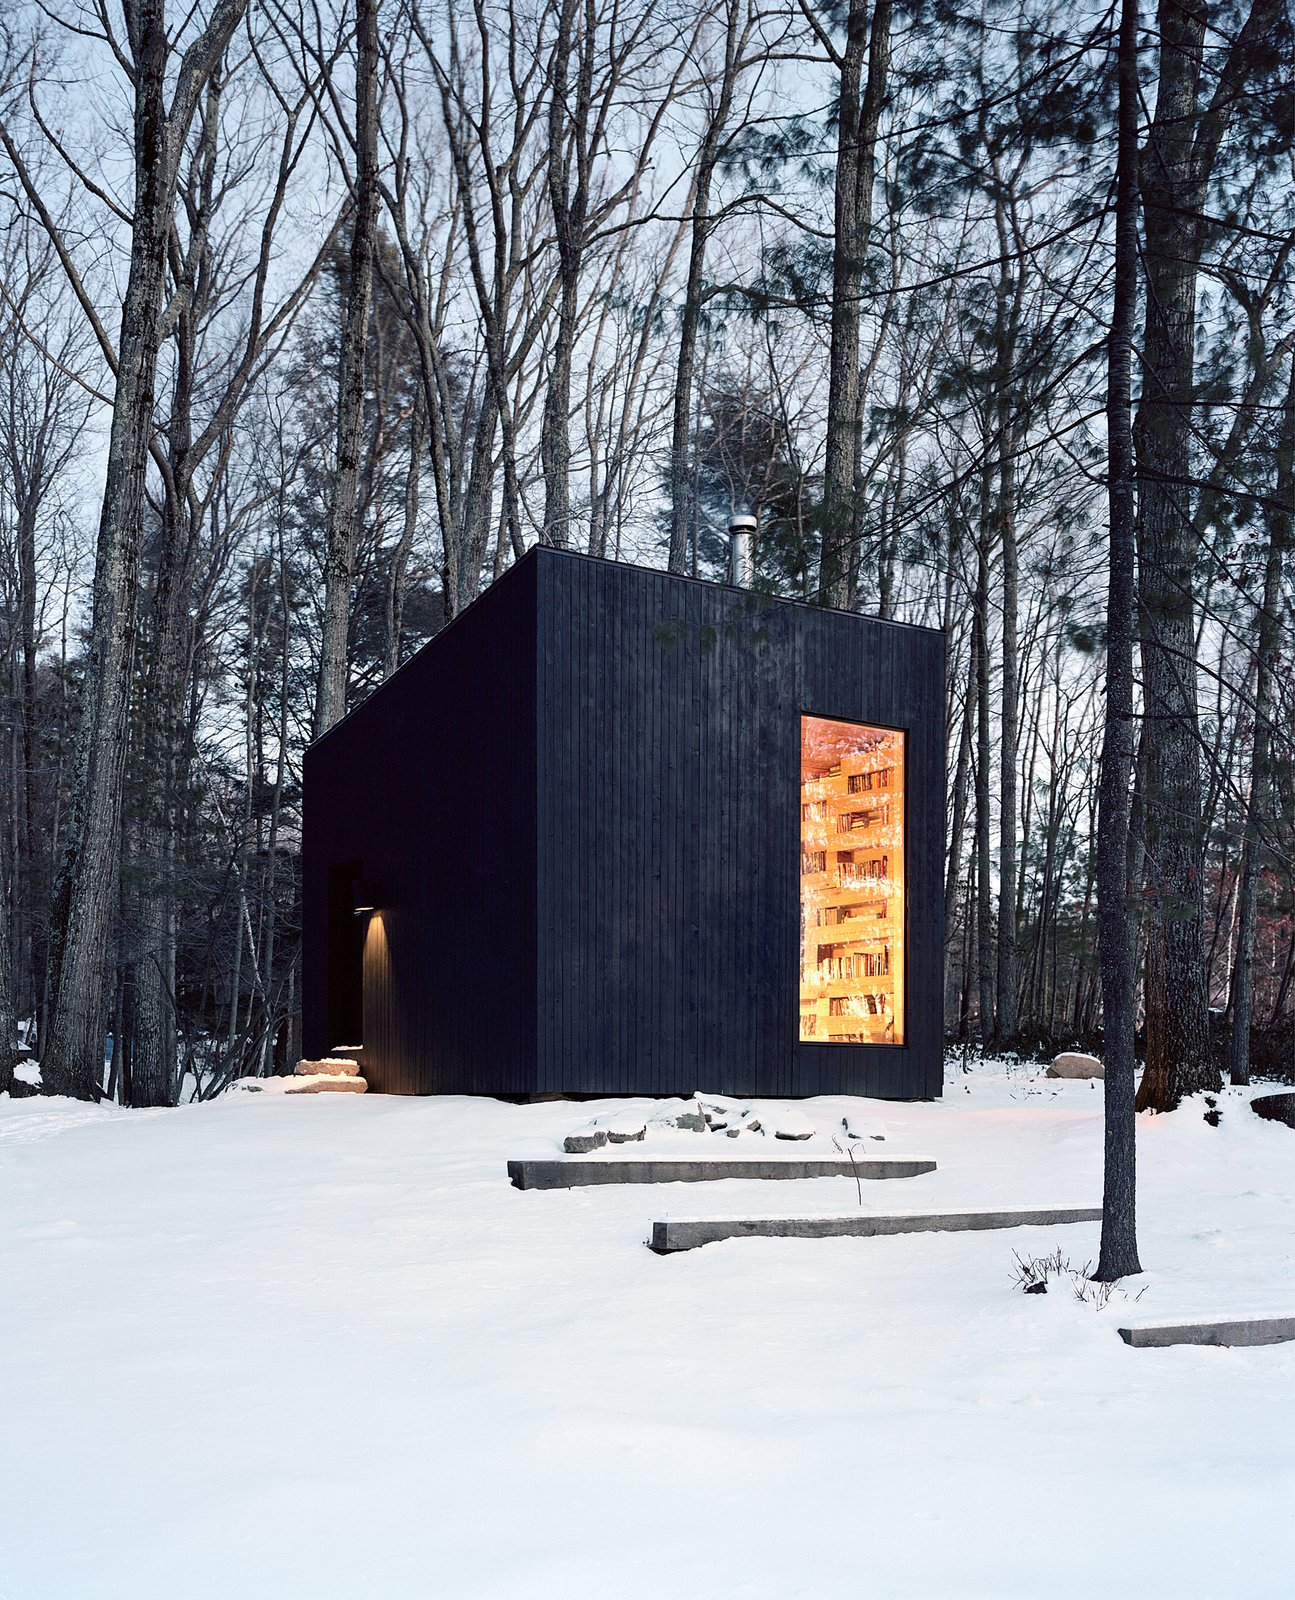 Exterior, Cabin Building Type, Wood Siding Material, Tiny Home Building Type, Metal Roof Material, Shed RoofLine, and Shed Building Type Jason and Suzanne Koxvold commissioned Studio Padron to design a 200-square-foot guesthouse on their Ellenville, New York, property. The geometric structure's dark cedar cladding contrasts with the inviting interior, which is heated by a cast-iron Jøtul stove. A layer of built-in bookshelves made from felled oak lumber also helps insulate the building in winter.